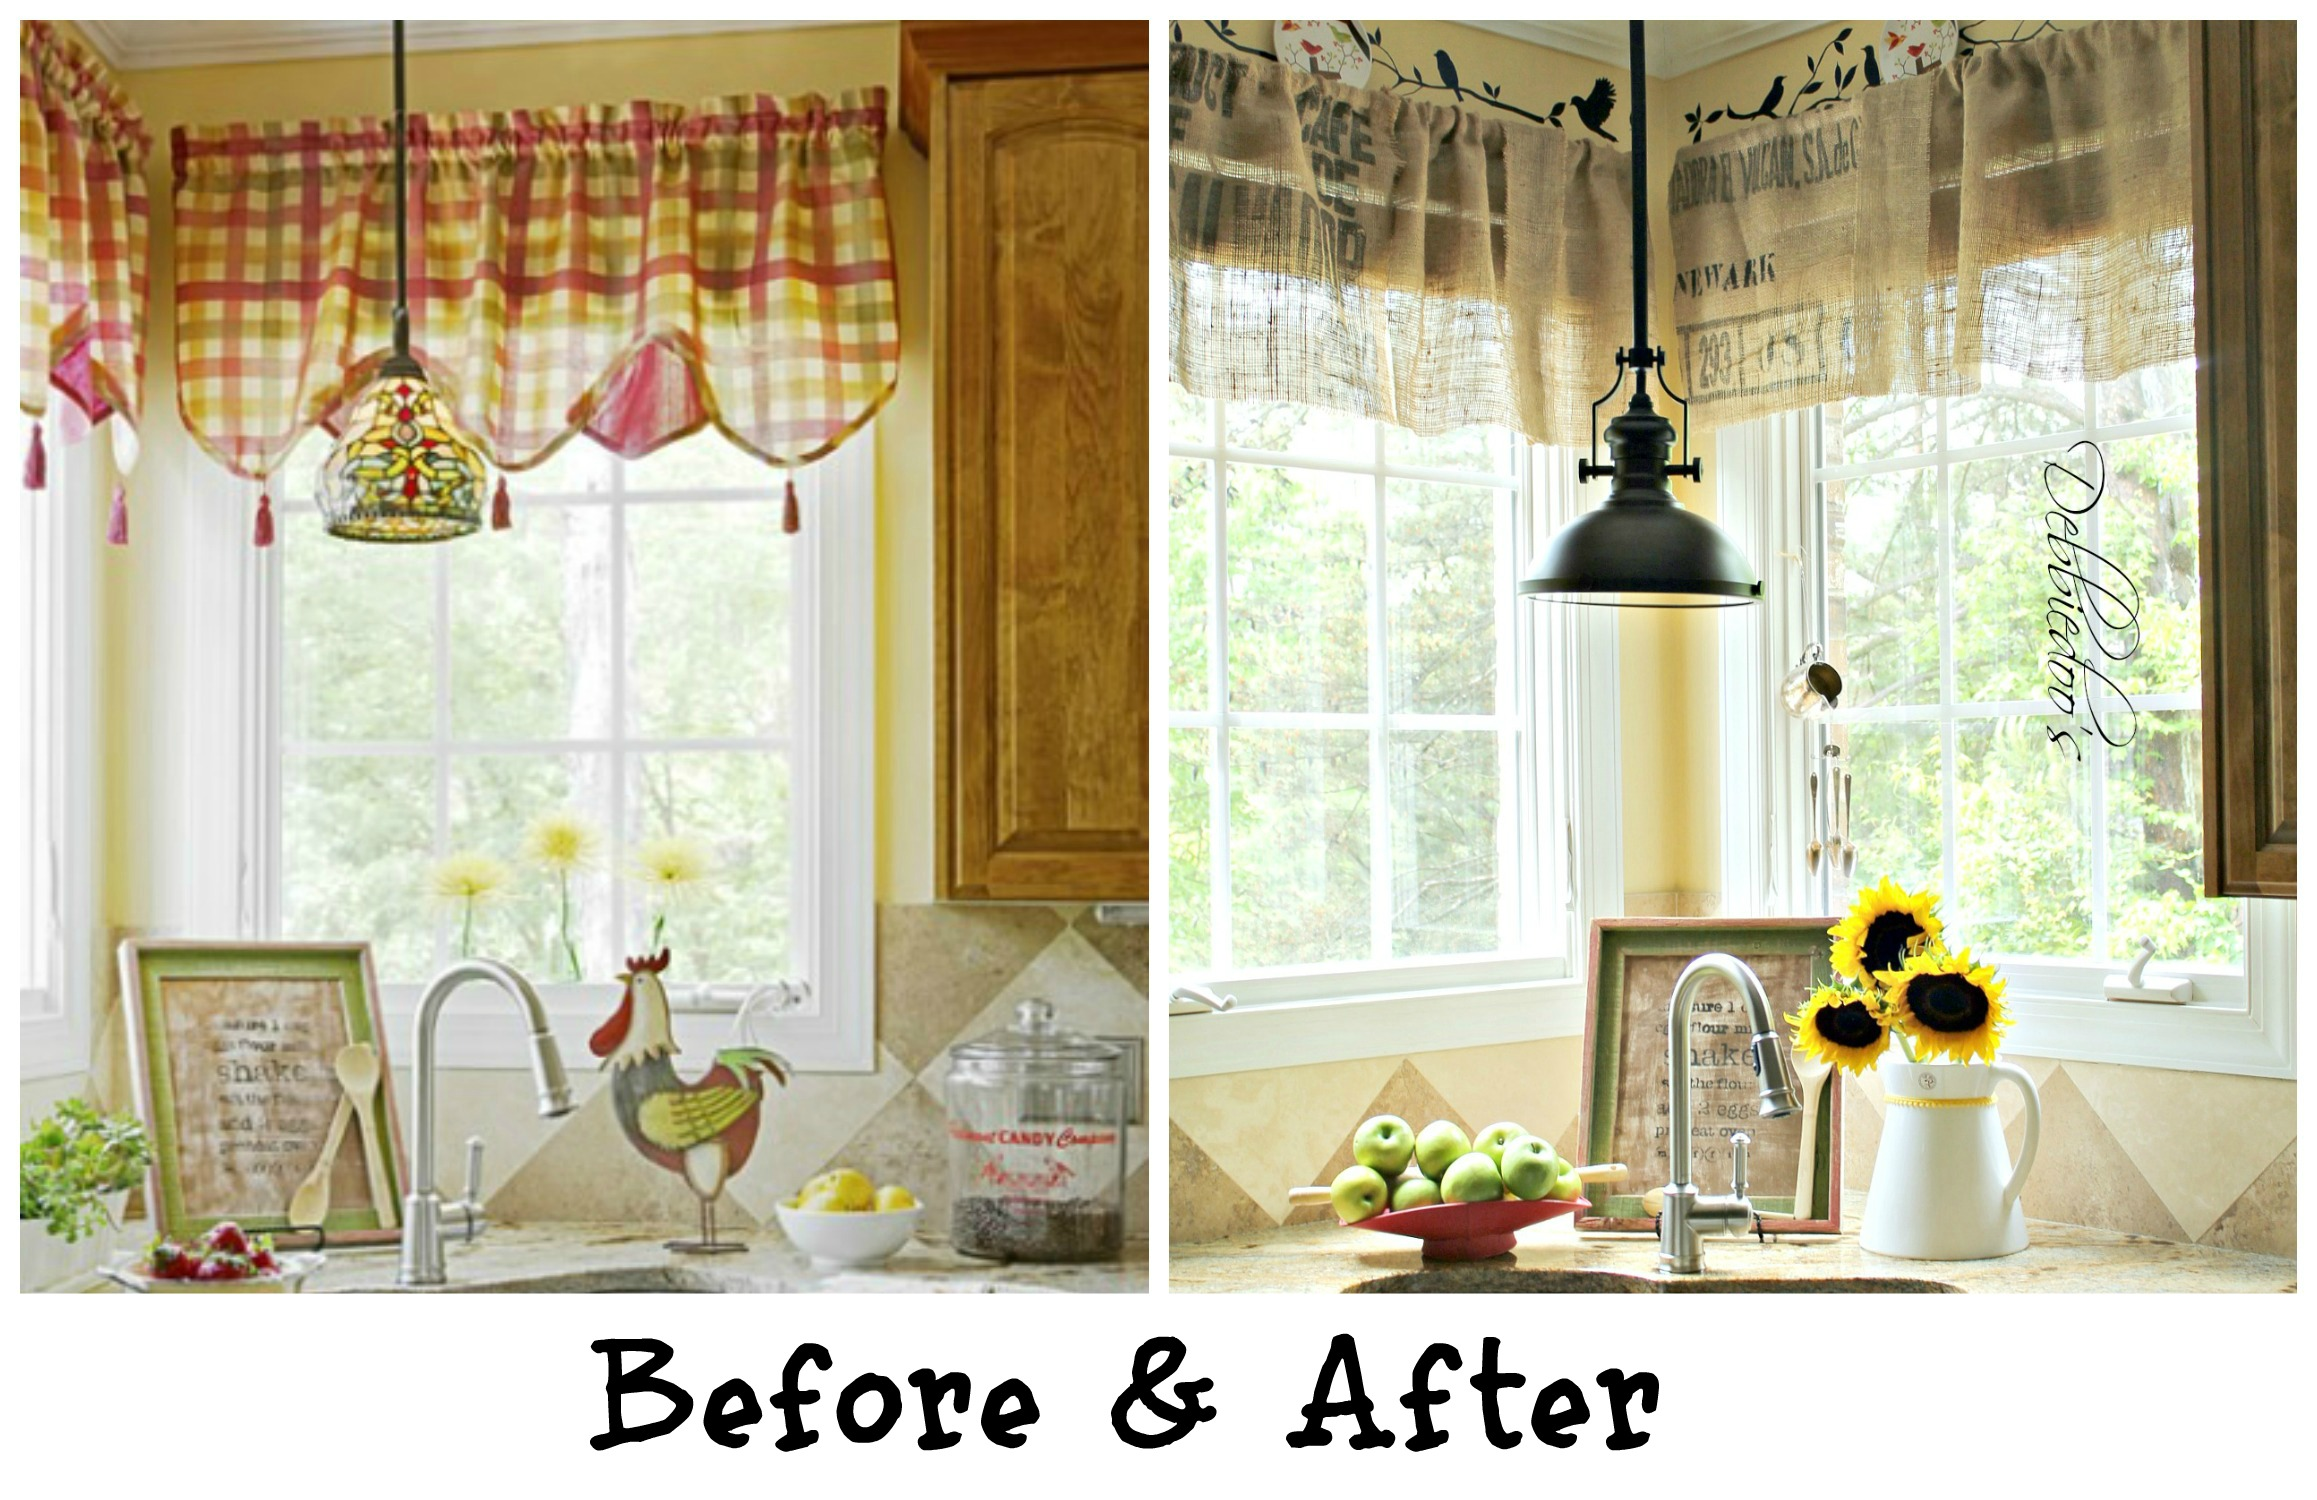 Diy No Sew Burlap Kitchen Valances...made From Coffee Bags!